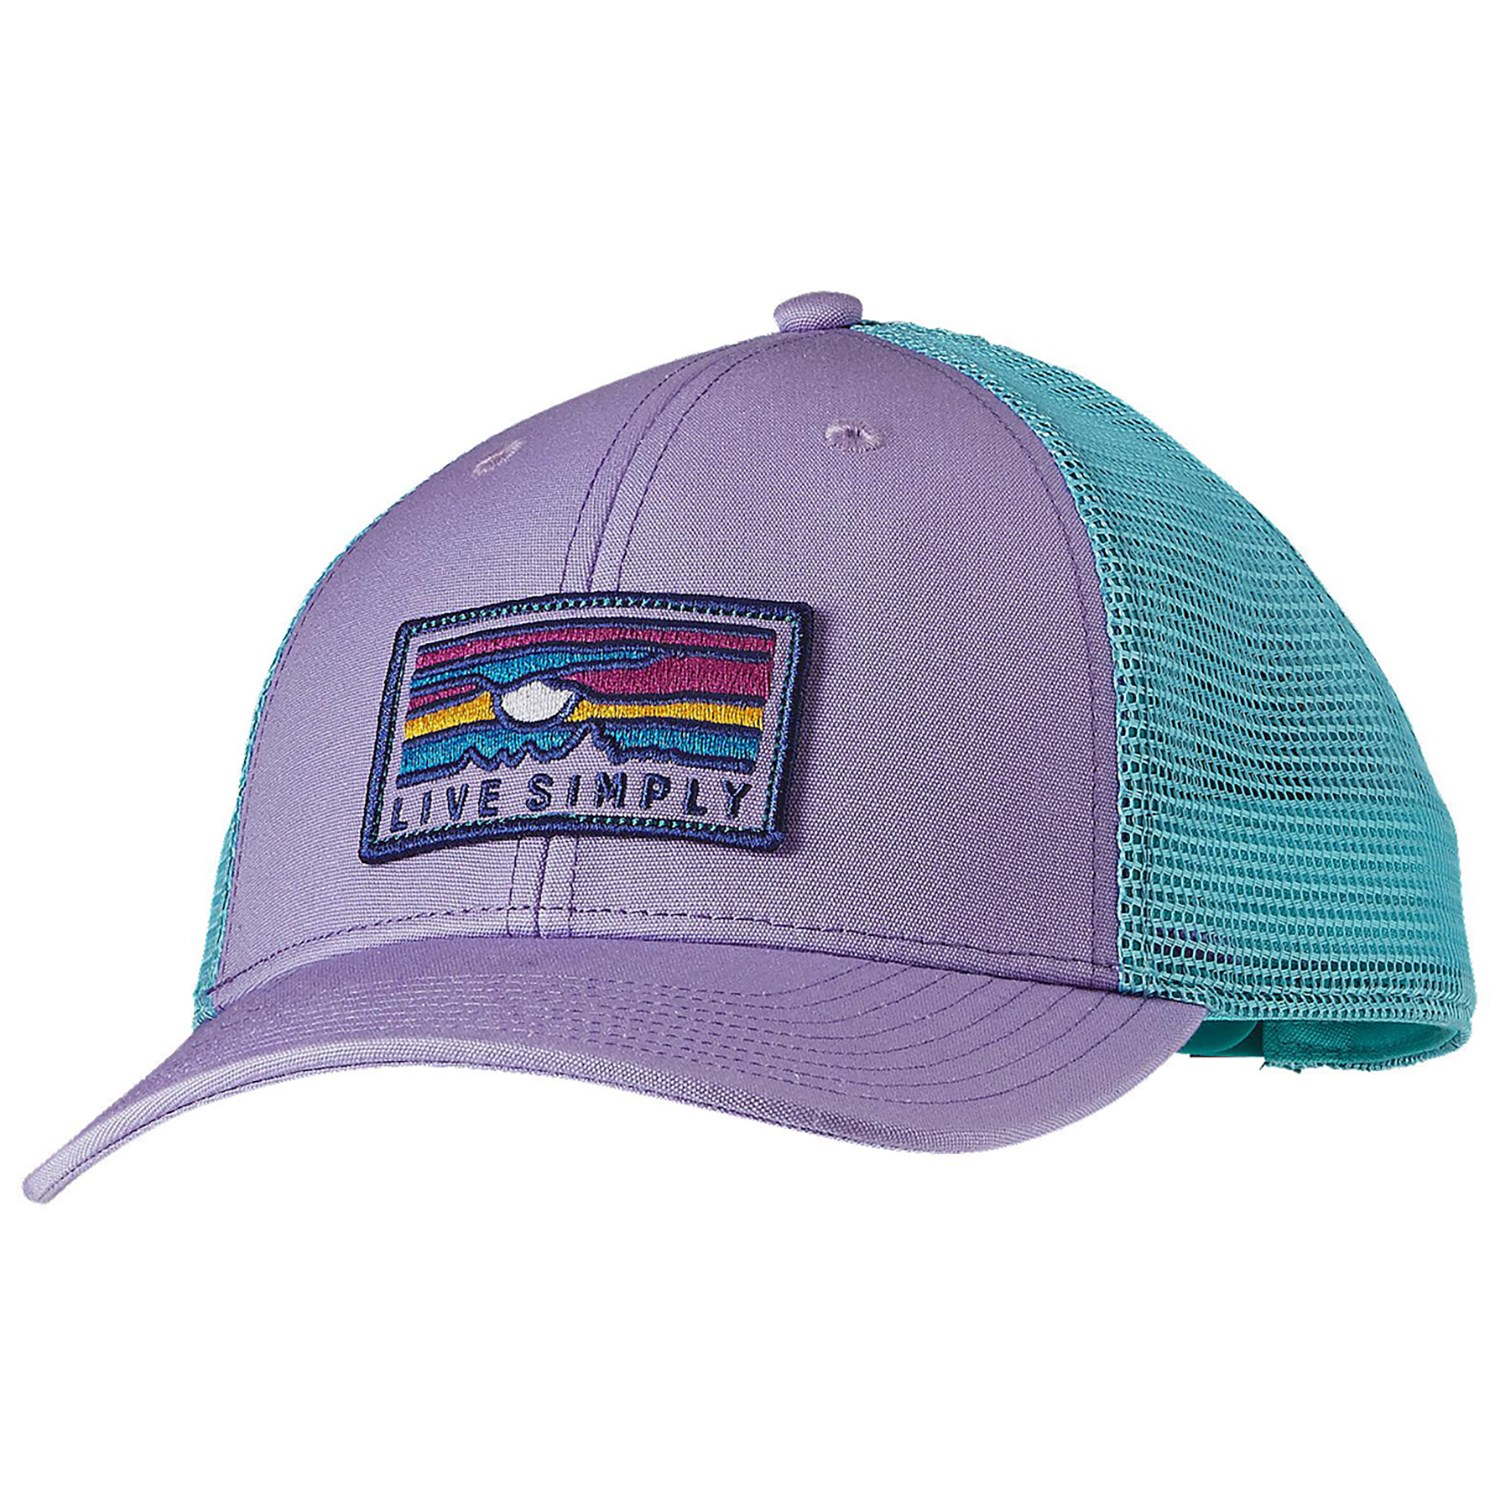 Patagonia Live Simply Sunset Trucker Hat  0e75bc92773d